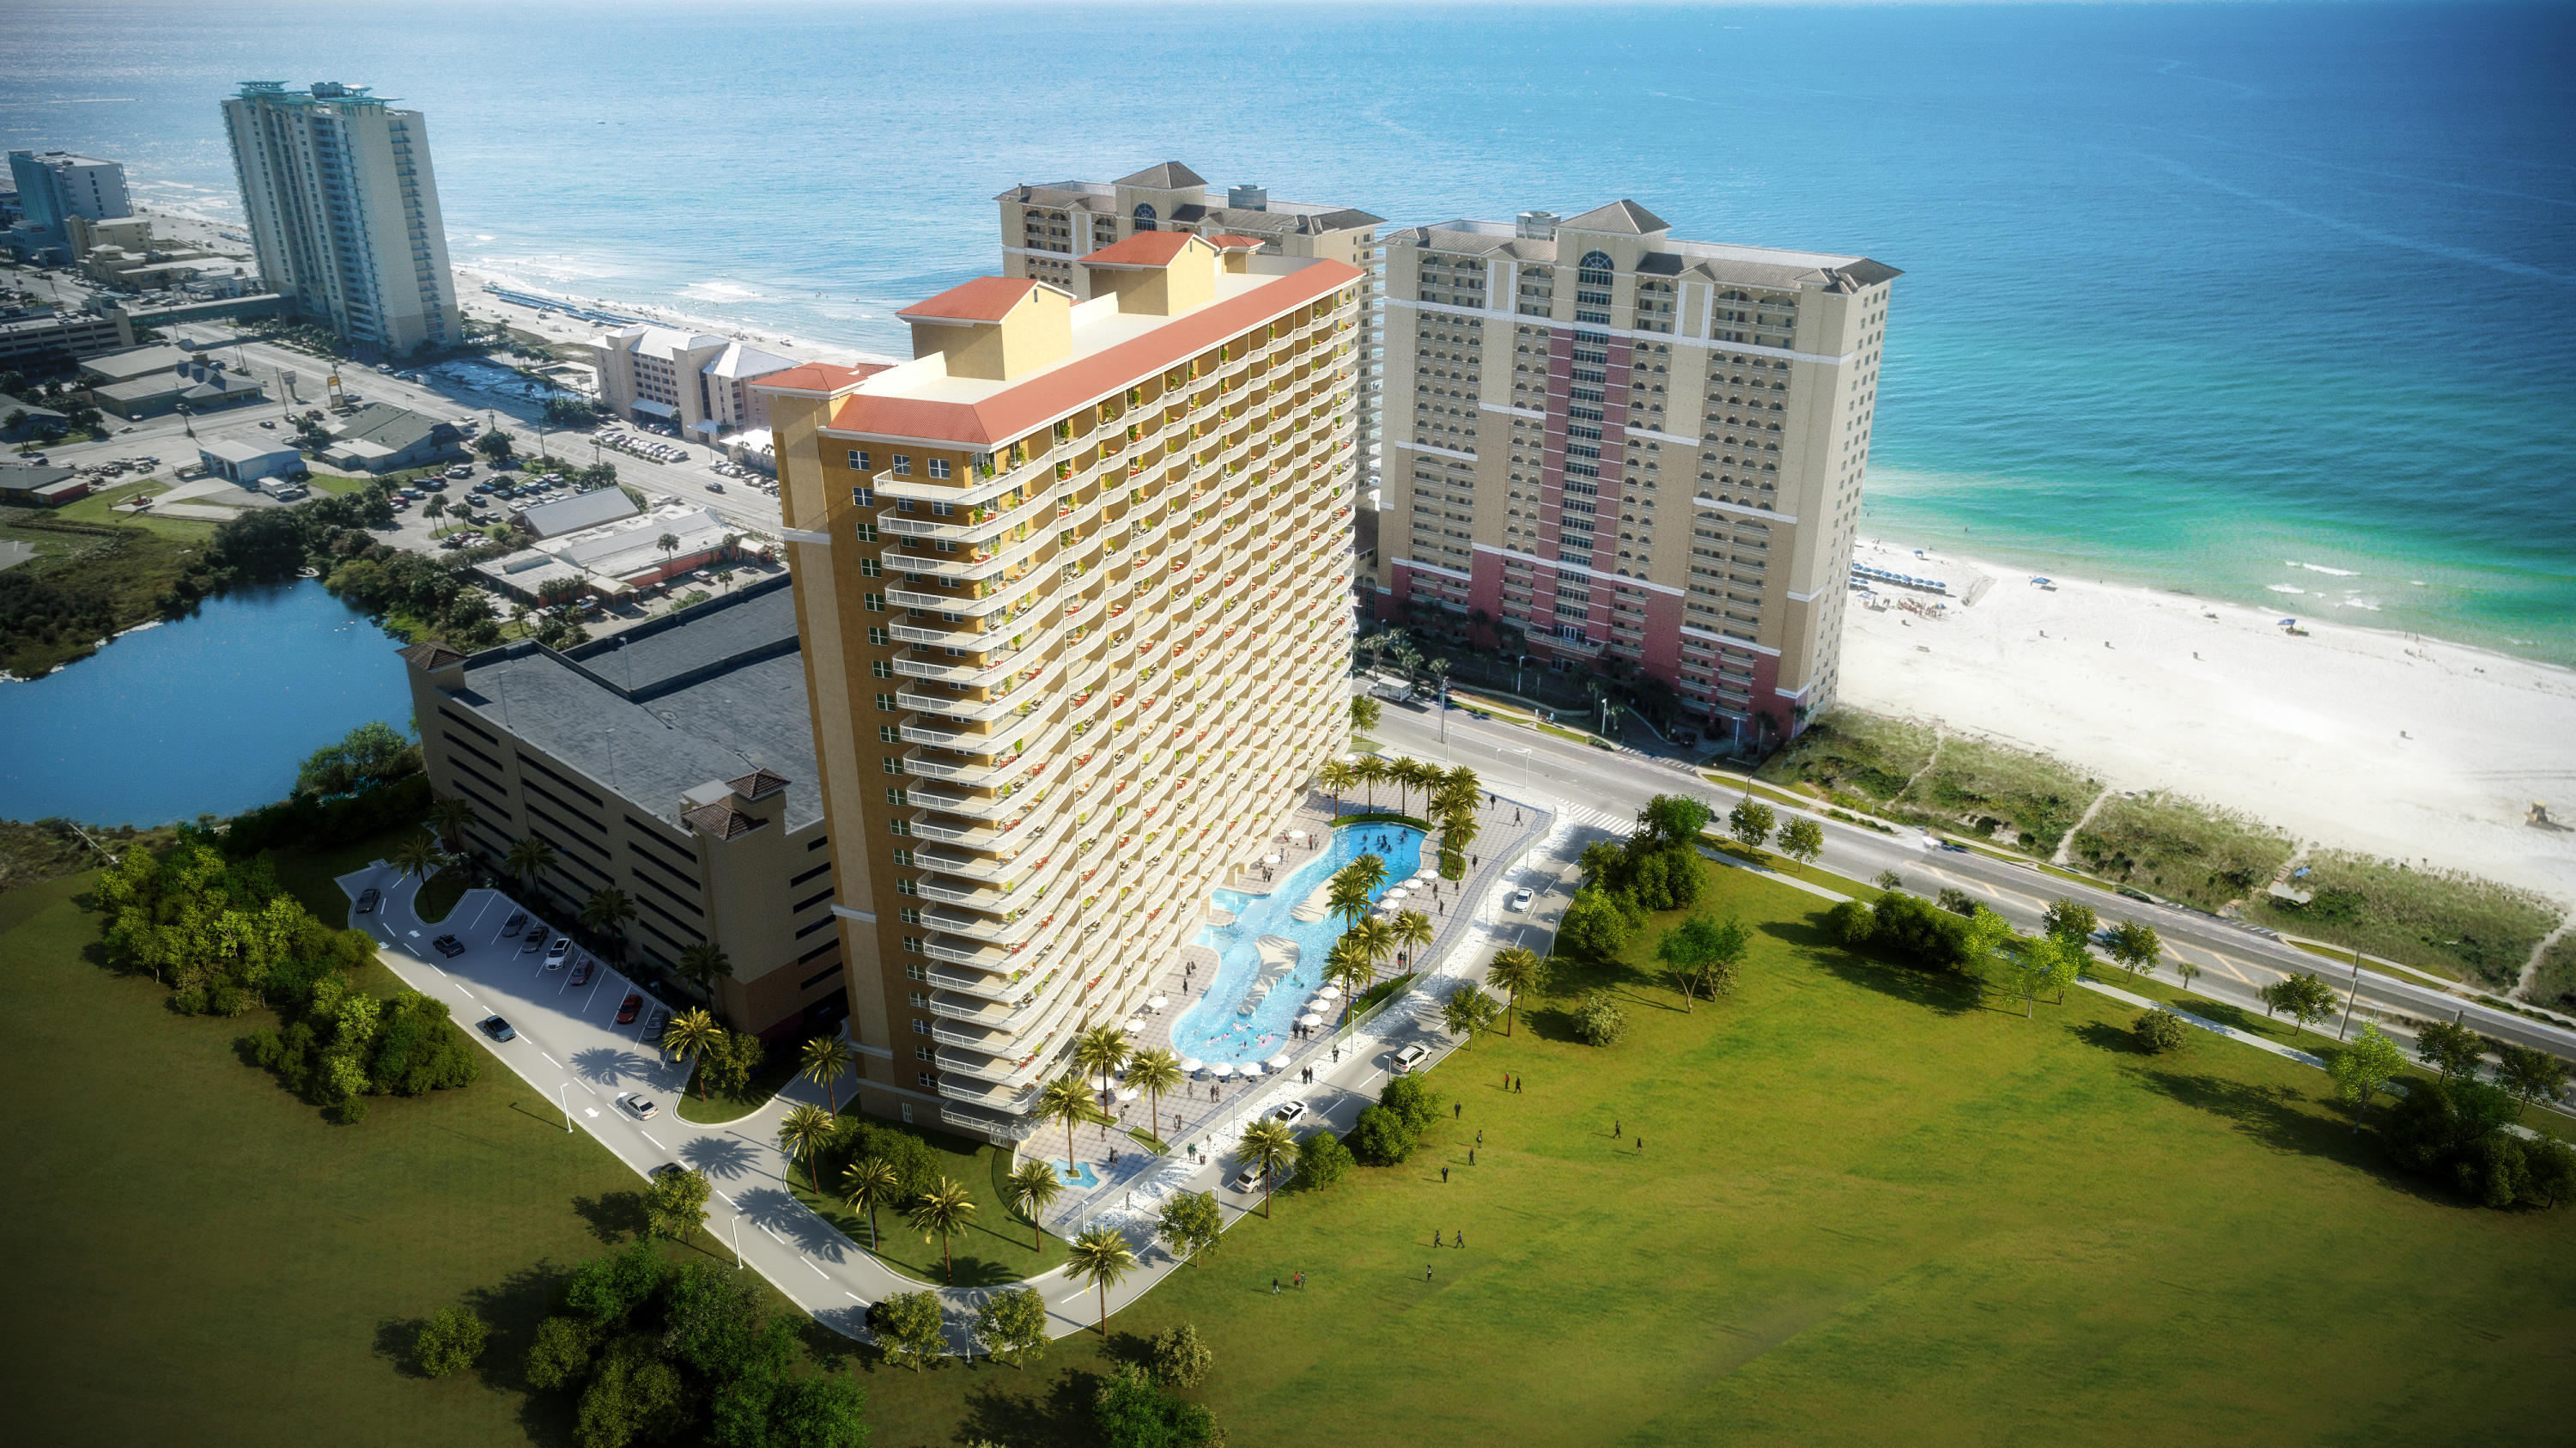 First pre-construction condos in Panama City Beach in 10 years! Adjacent to Pier Park and a quick walk to City Pier. Luxury interiors w/stainless steel appliances, quartz counters, 9 ft. ceilings, 10 ft. wide balconies. Amenities include lagoon-style pool, large fitness center, snack bar and parking garage.